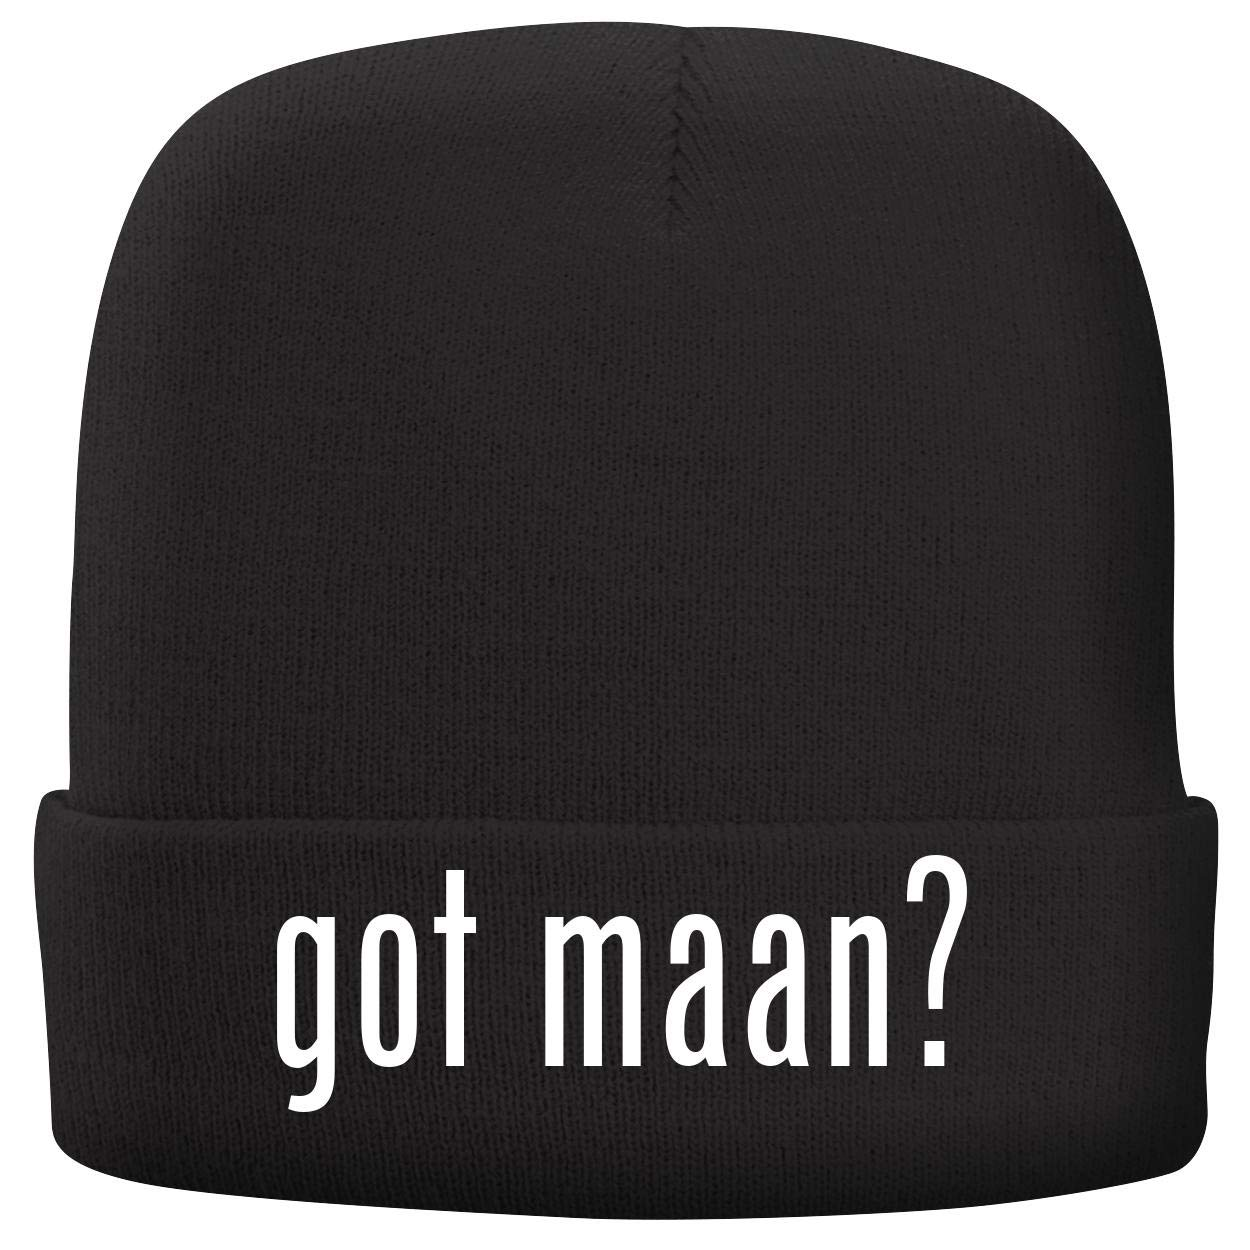 BH Cool Designs got maan? - Adult Comfortable Fleece Lined Beanie, Black by BH Cool Designs